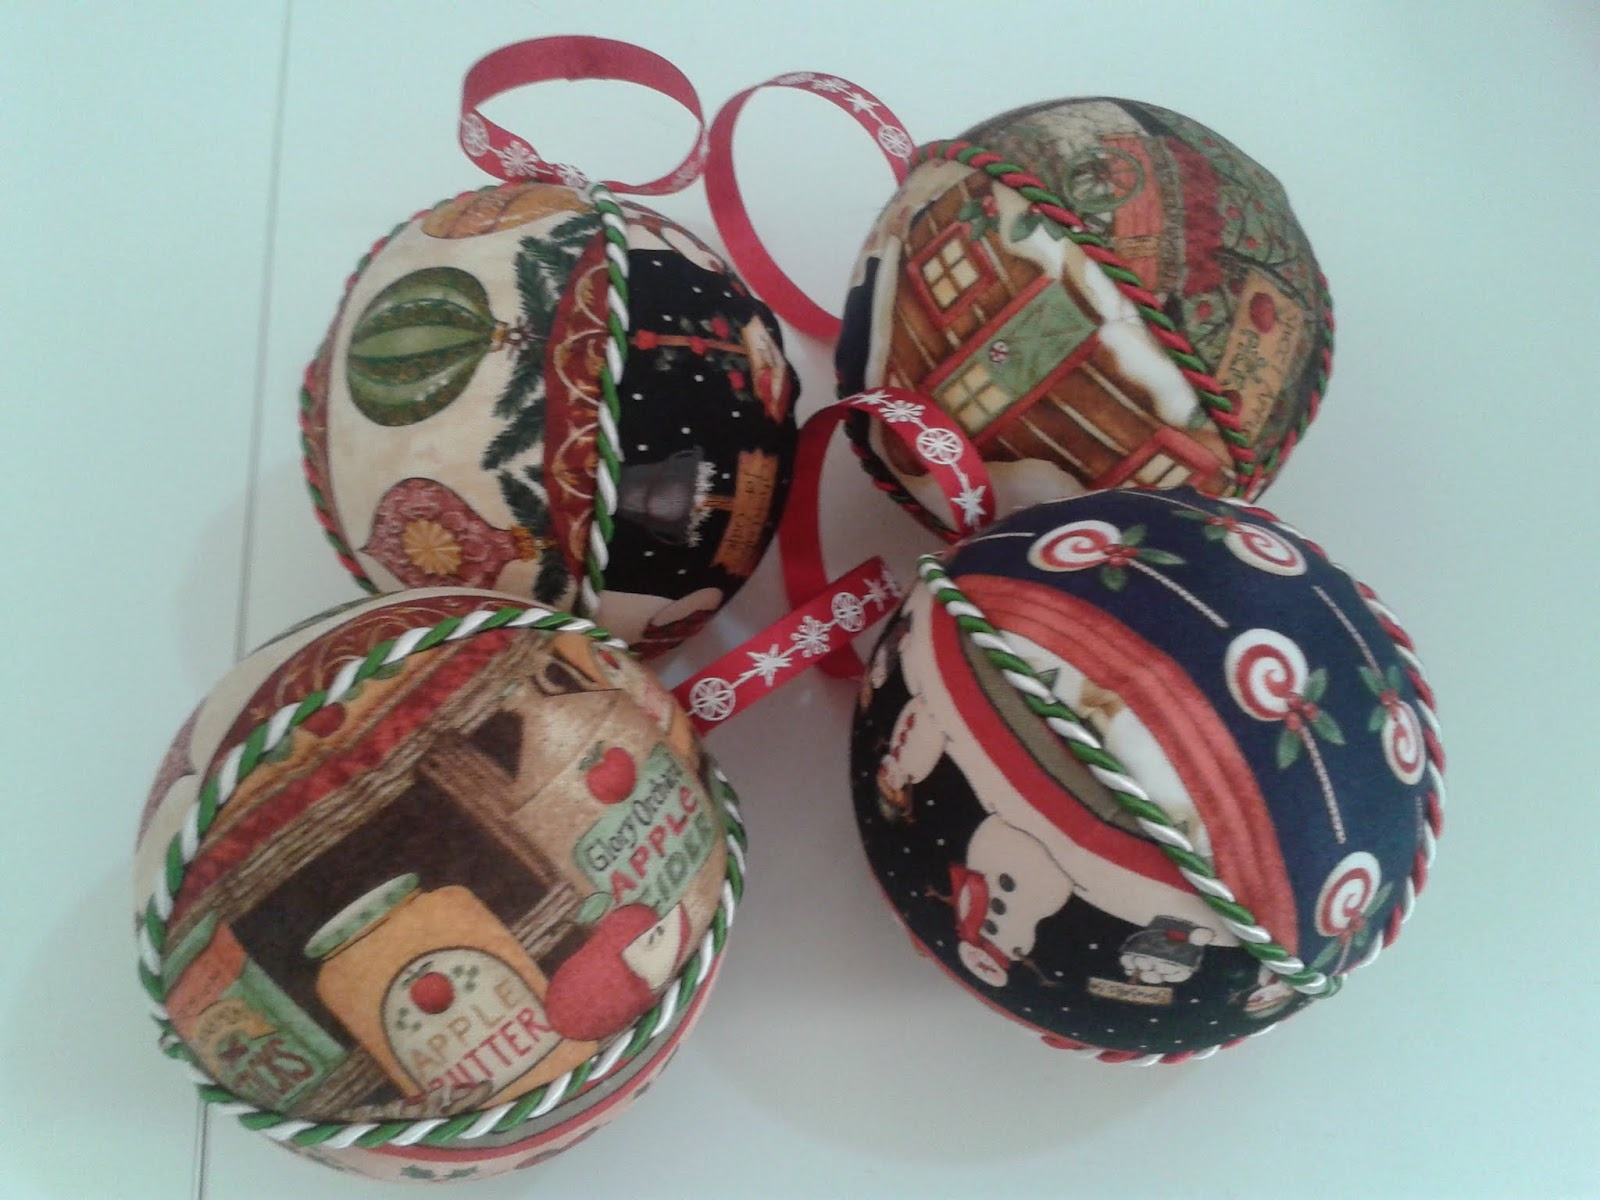 Super Palline di natale in stoffa   Fracakes baked with love TN35